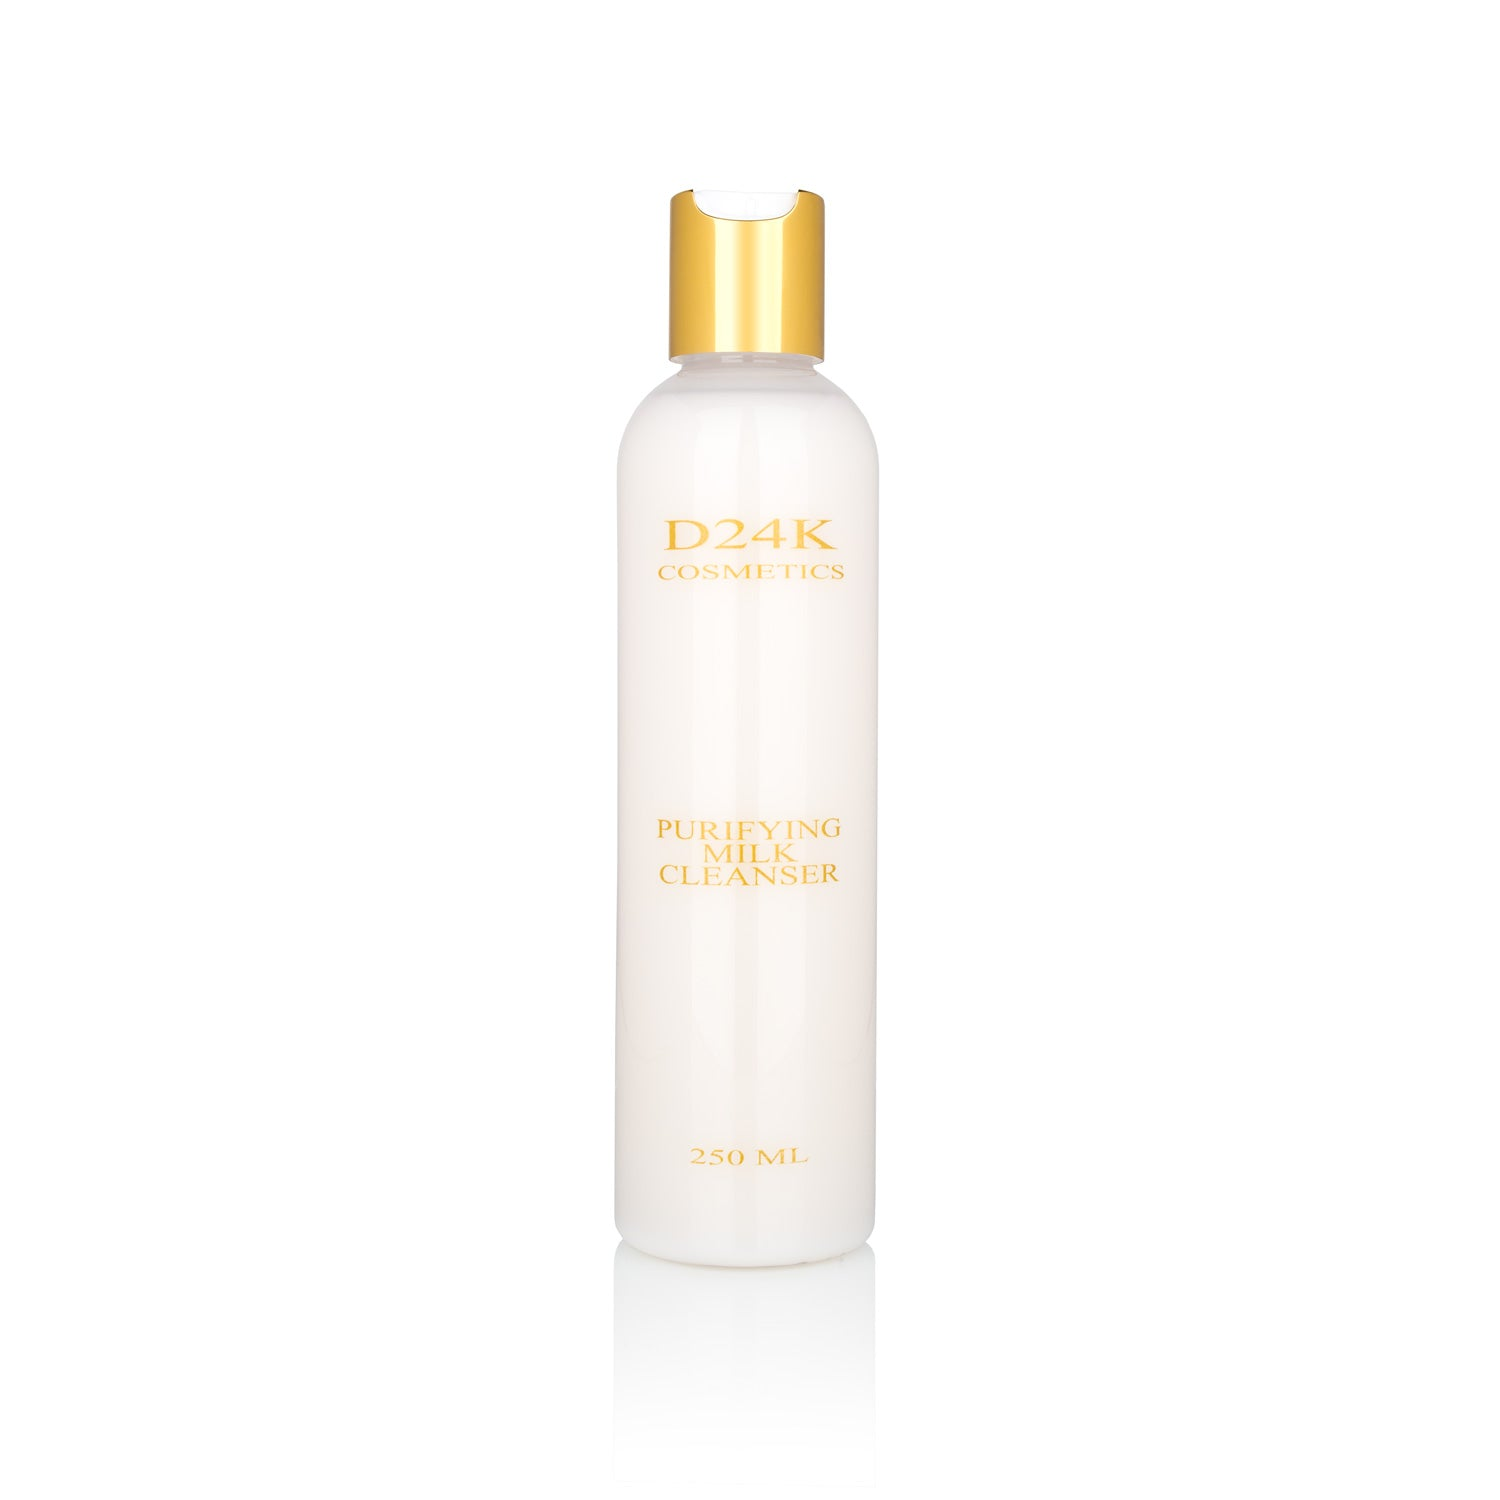 D24k by D'OR - Purifying Milk Cleanser